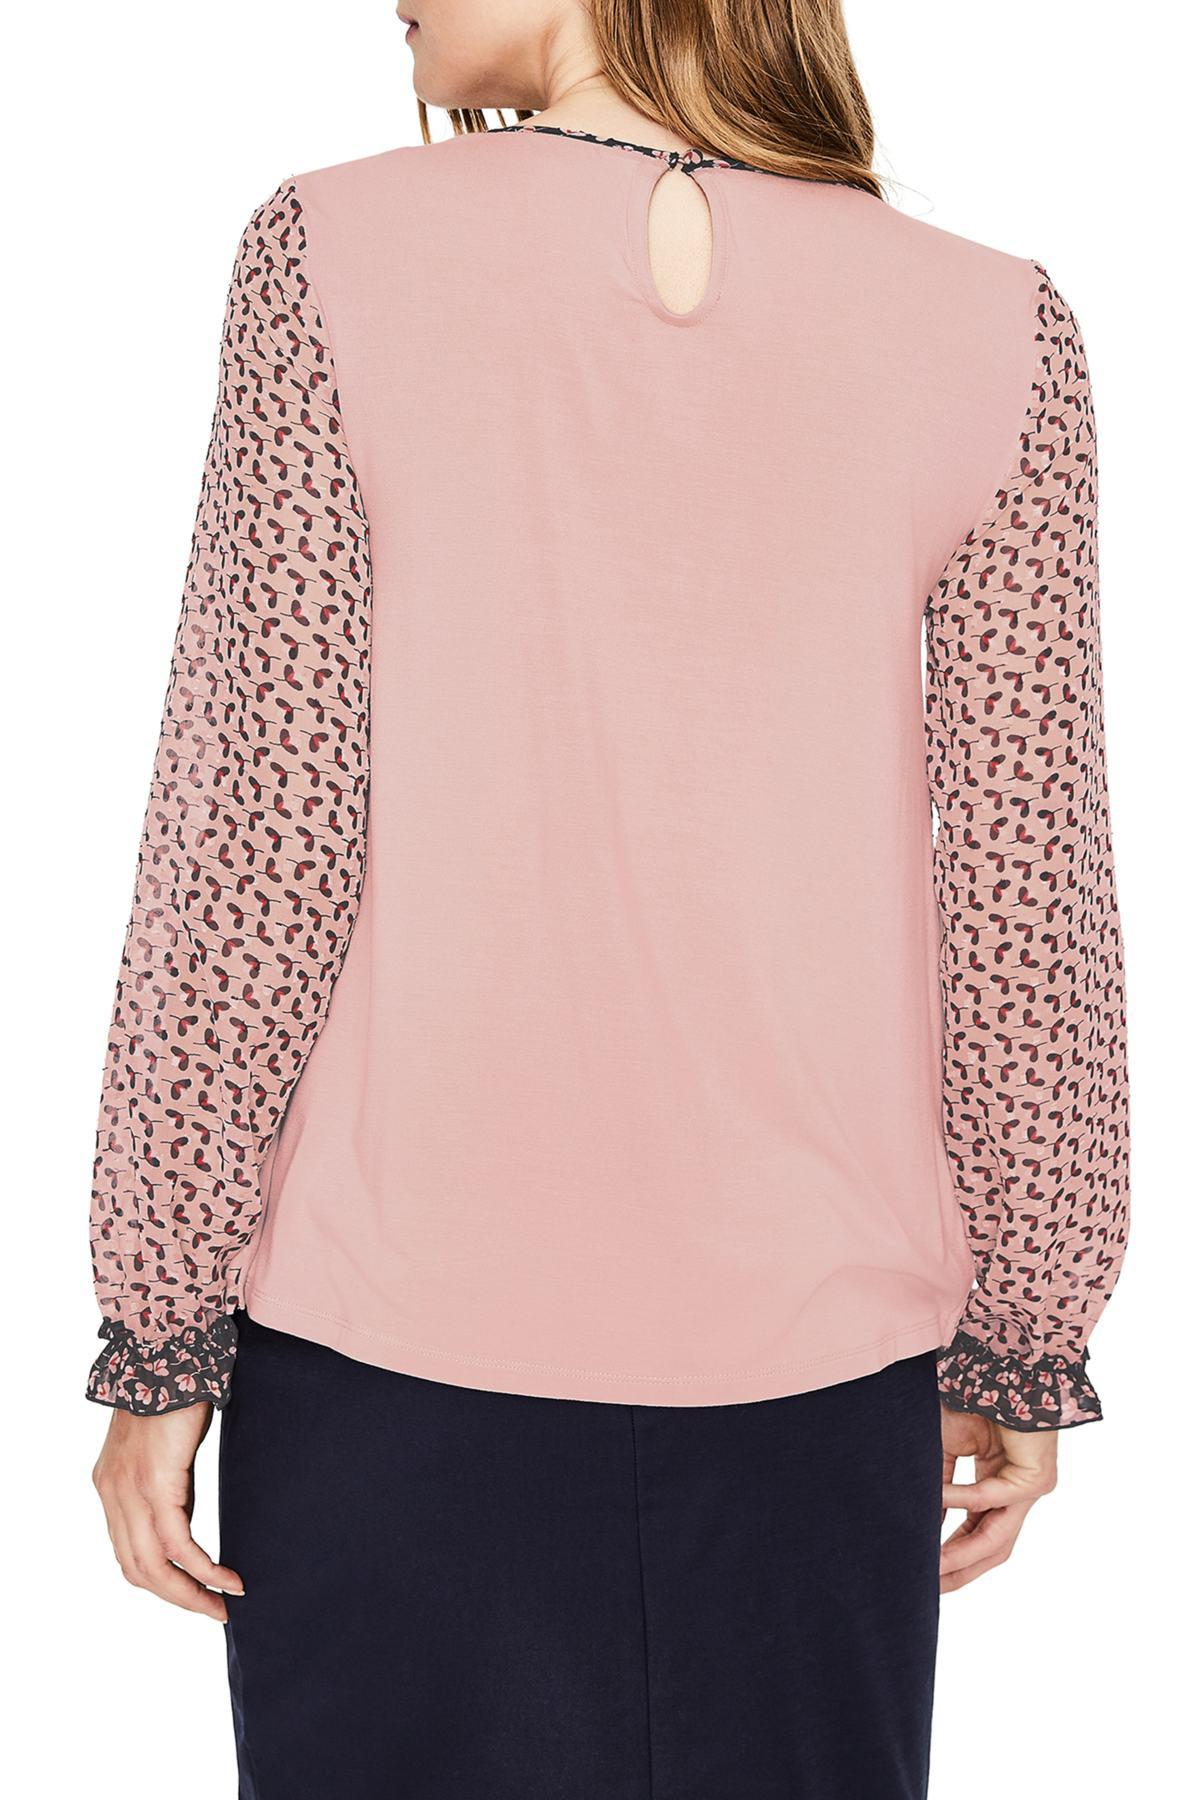 Lyst Boden Mix Media Contrast Detail Blouse In Pink Save 32 0